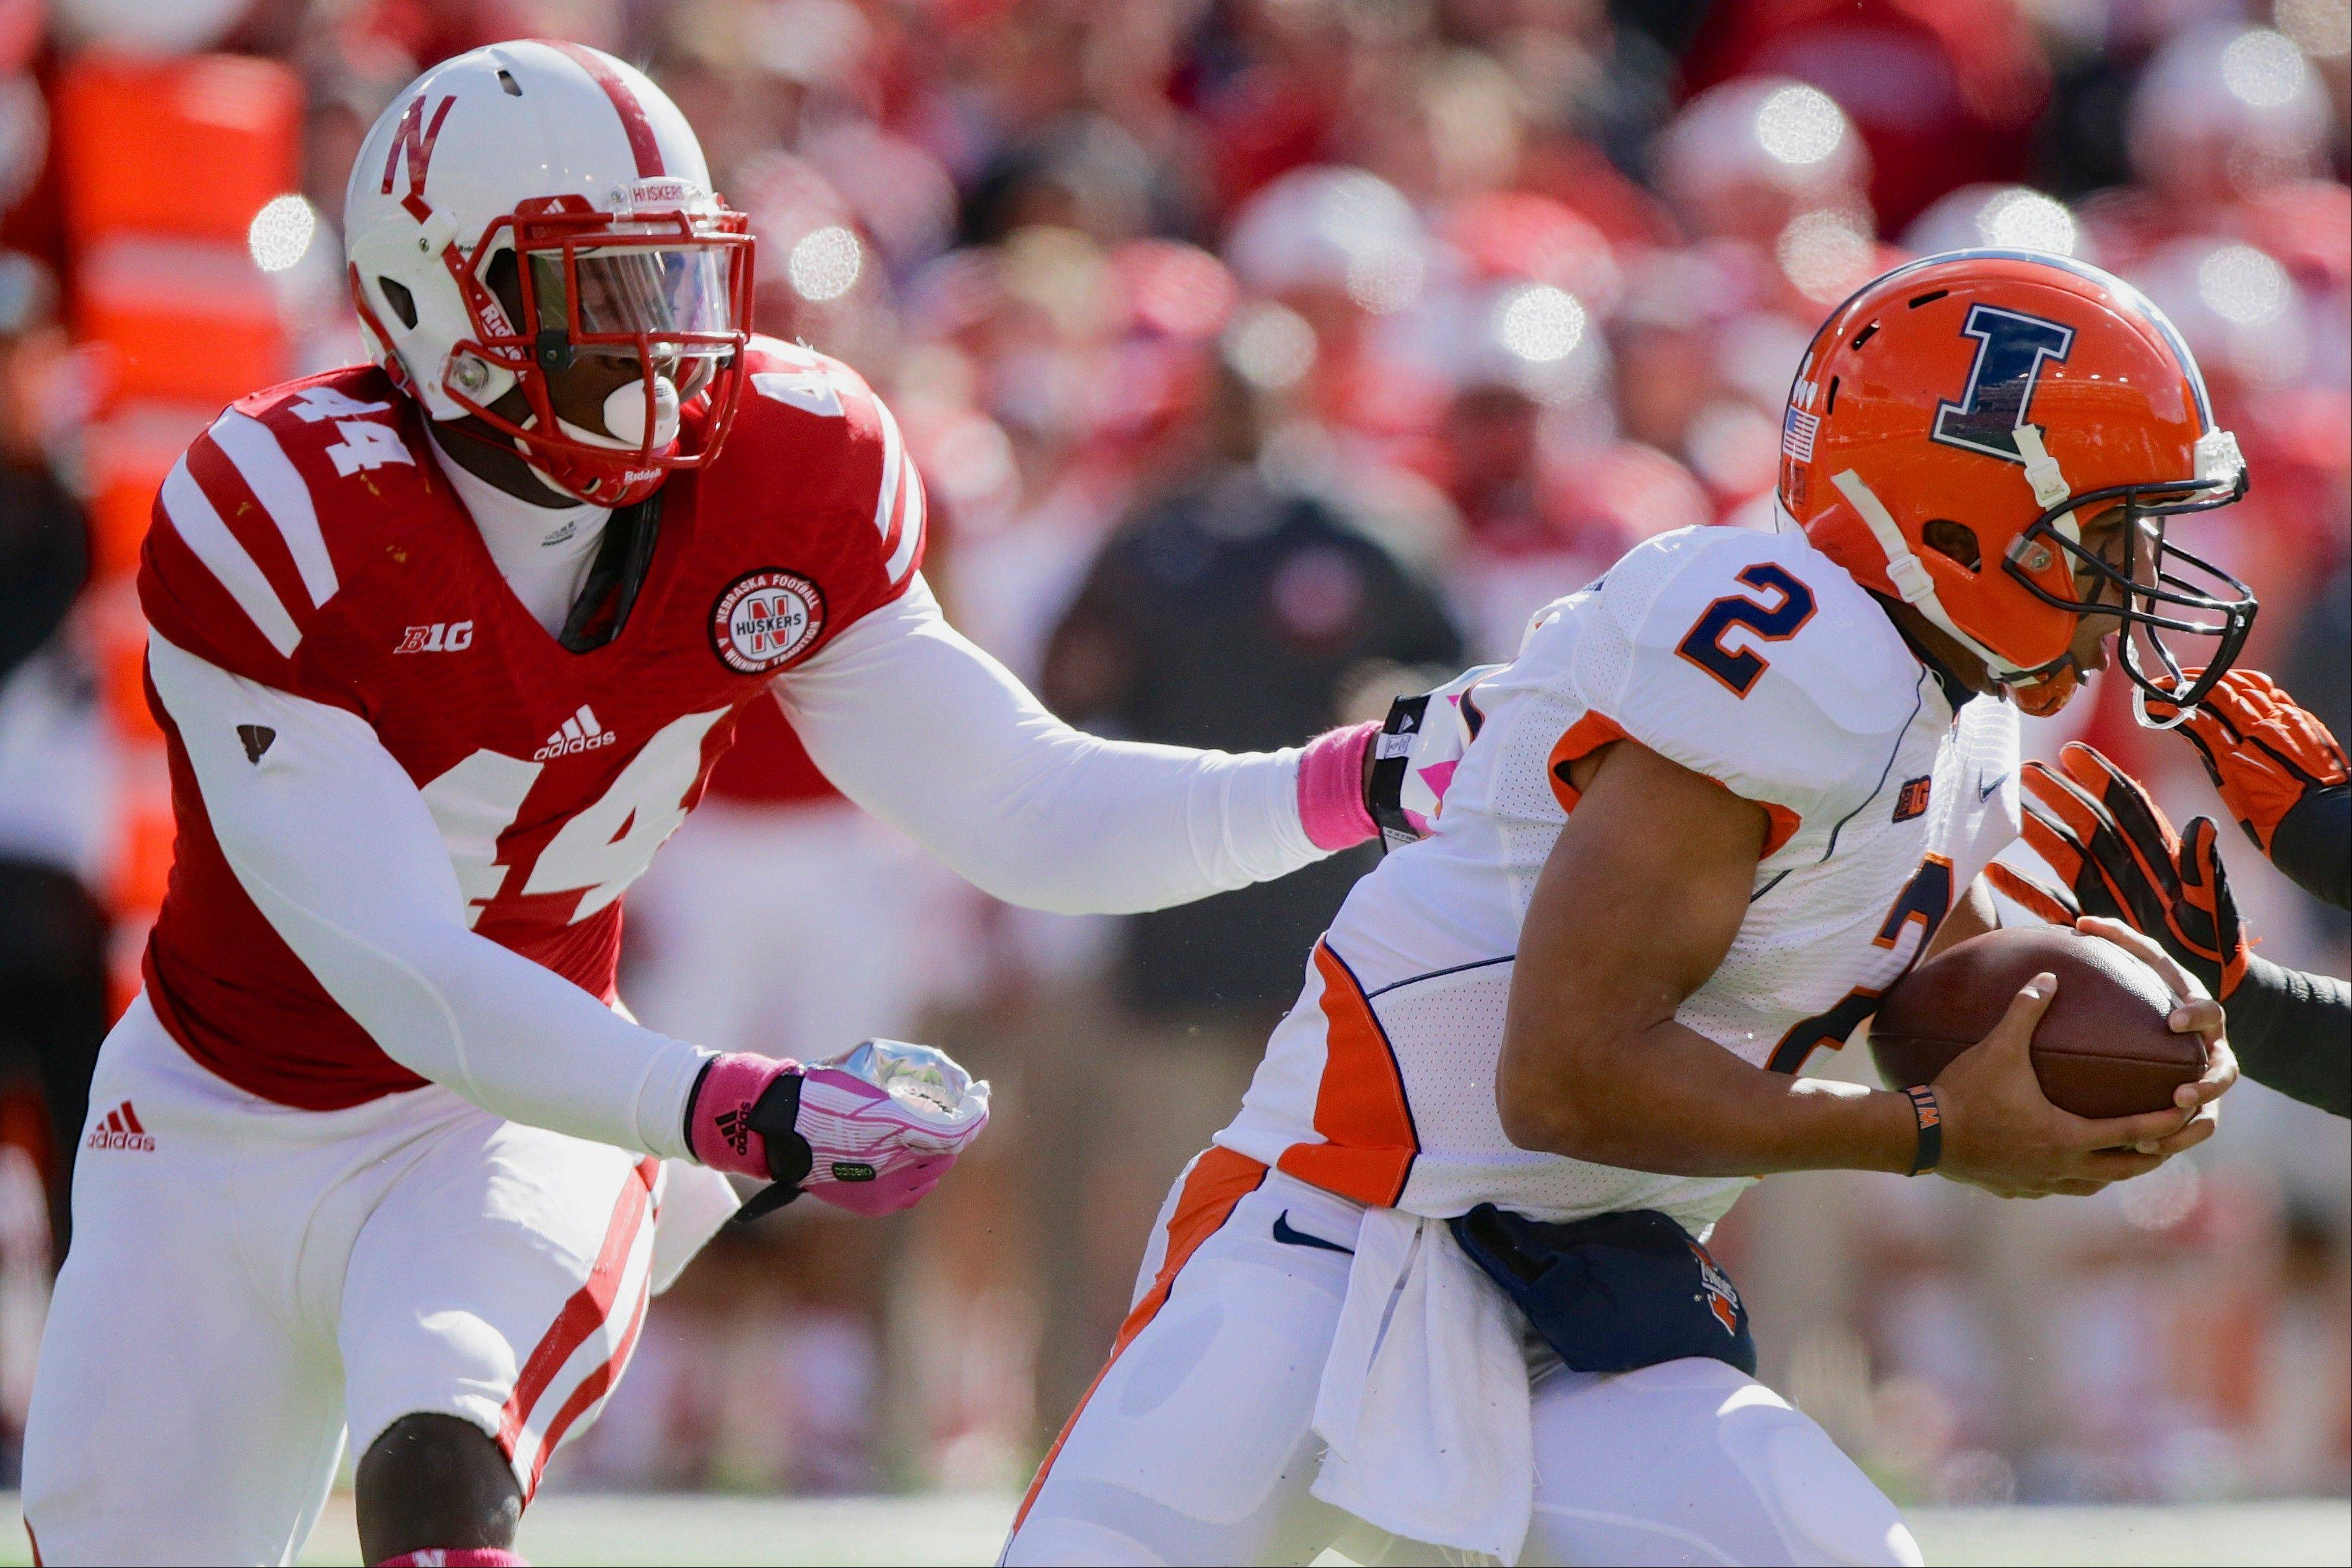 Nebraska defensive end Randy Gregory pursues Illinois quarterback Nathan Scheelhaase during last week's game in Lincoln, Neb.